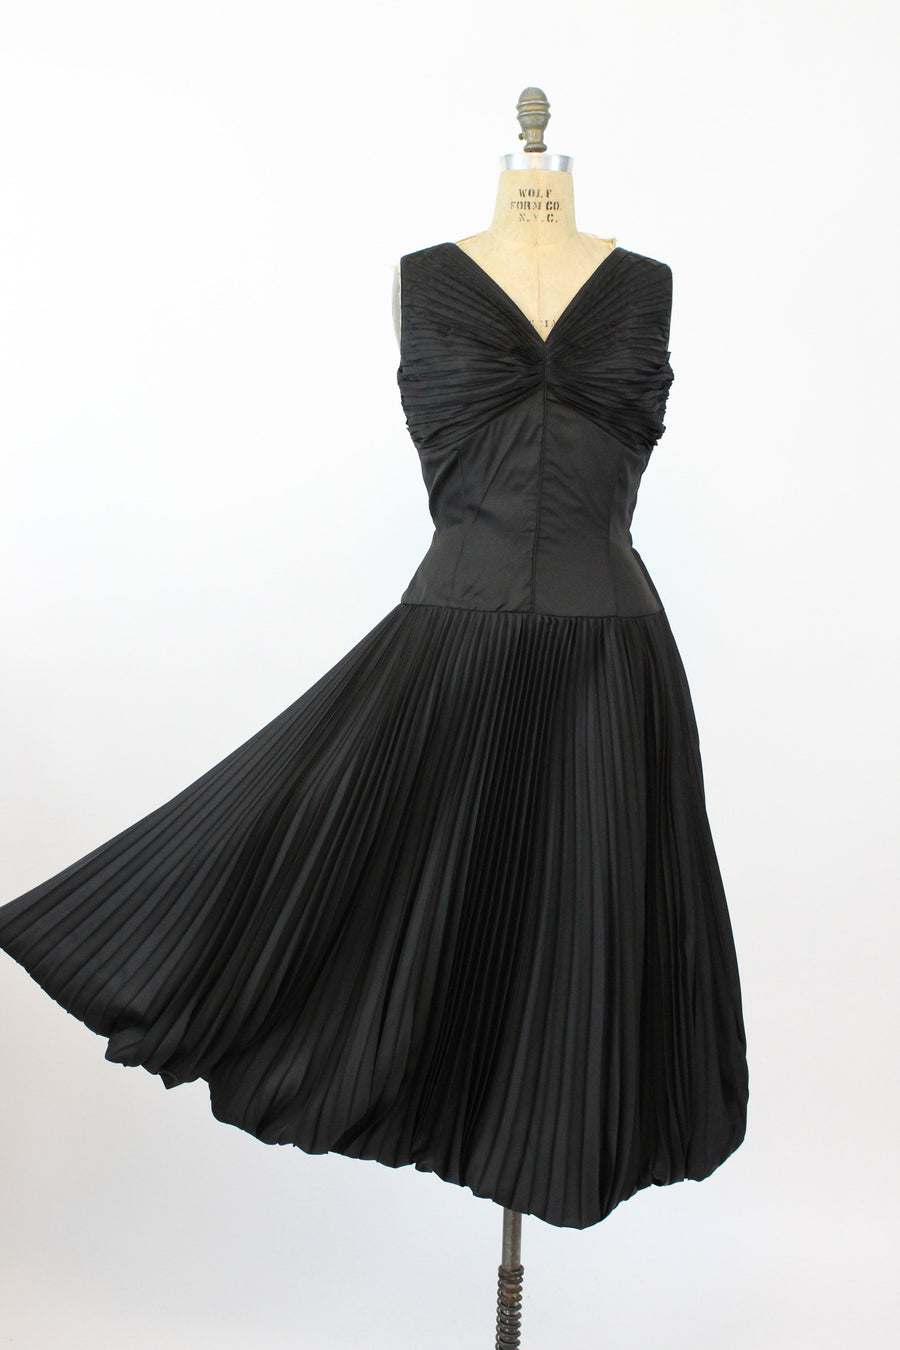 1950s Rare LILLI ANN dress | vintage full pleated bubble skirt | medium